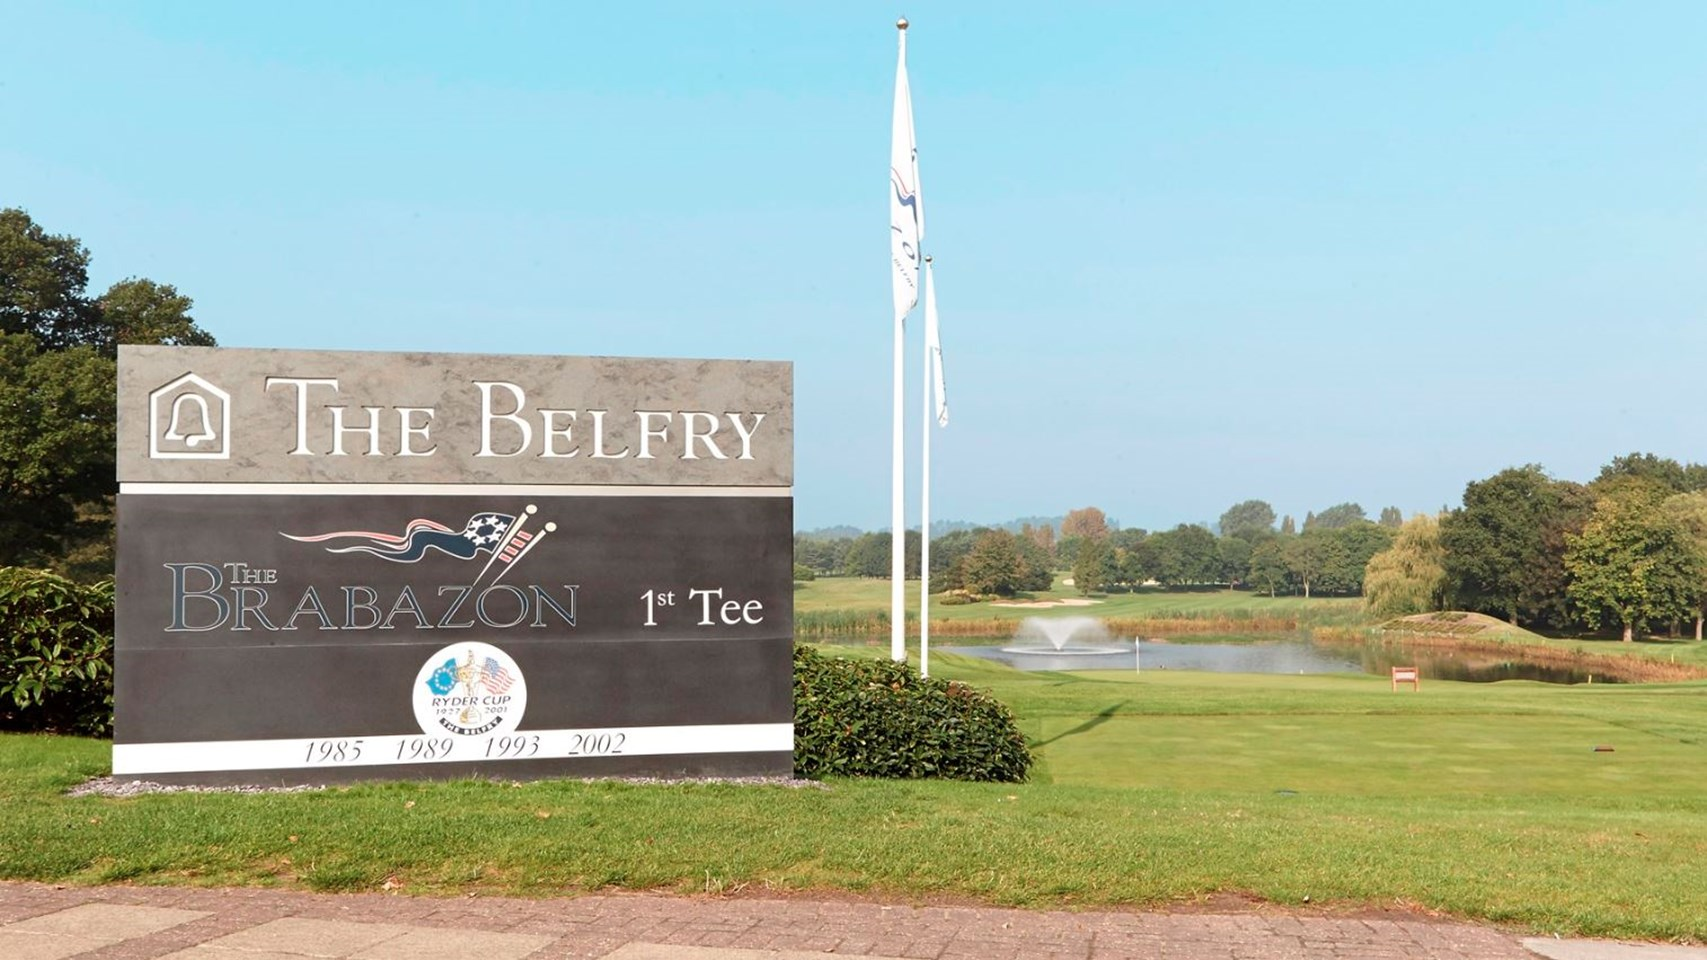 First tee of the Brabazon Golf Course at The Belfry